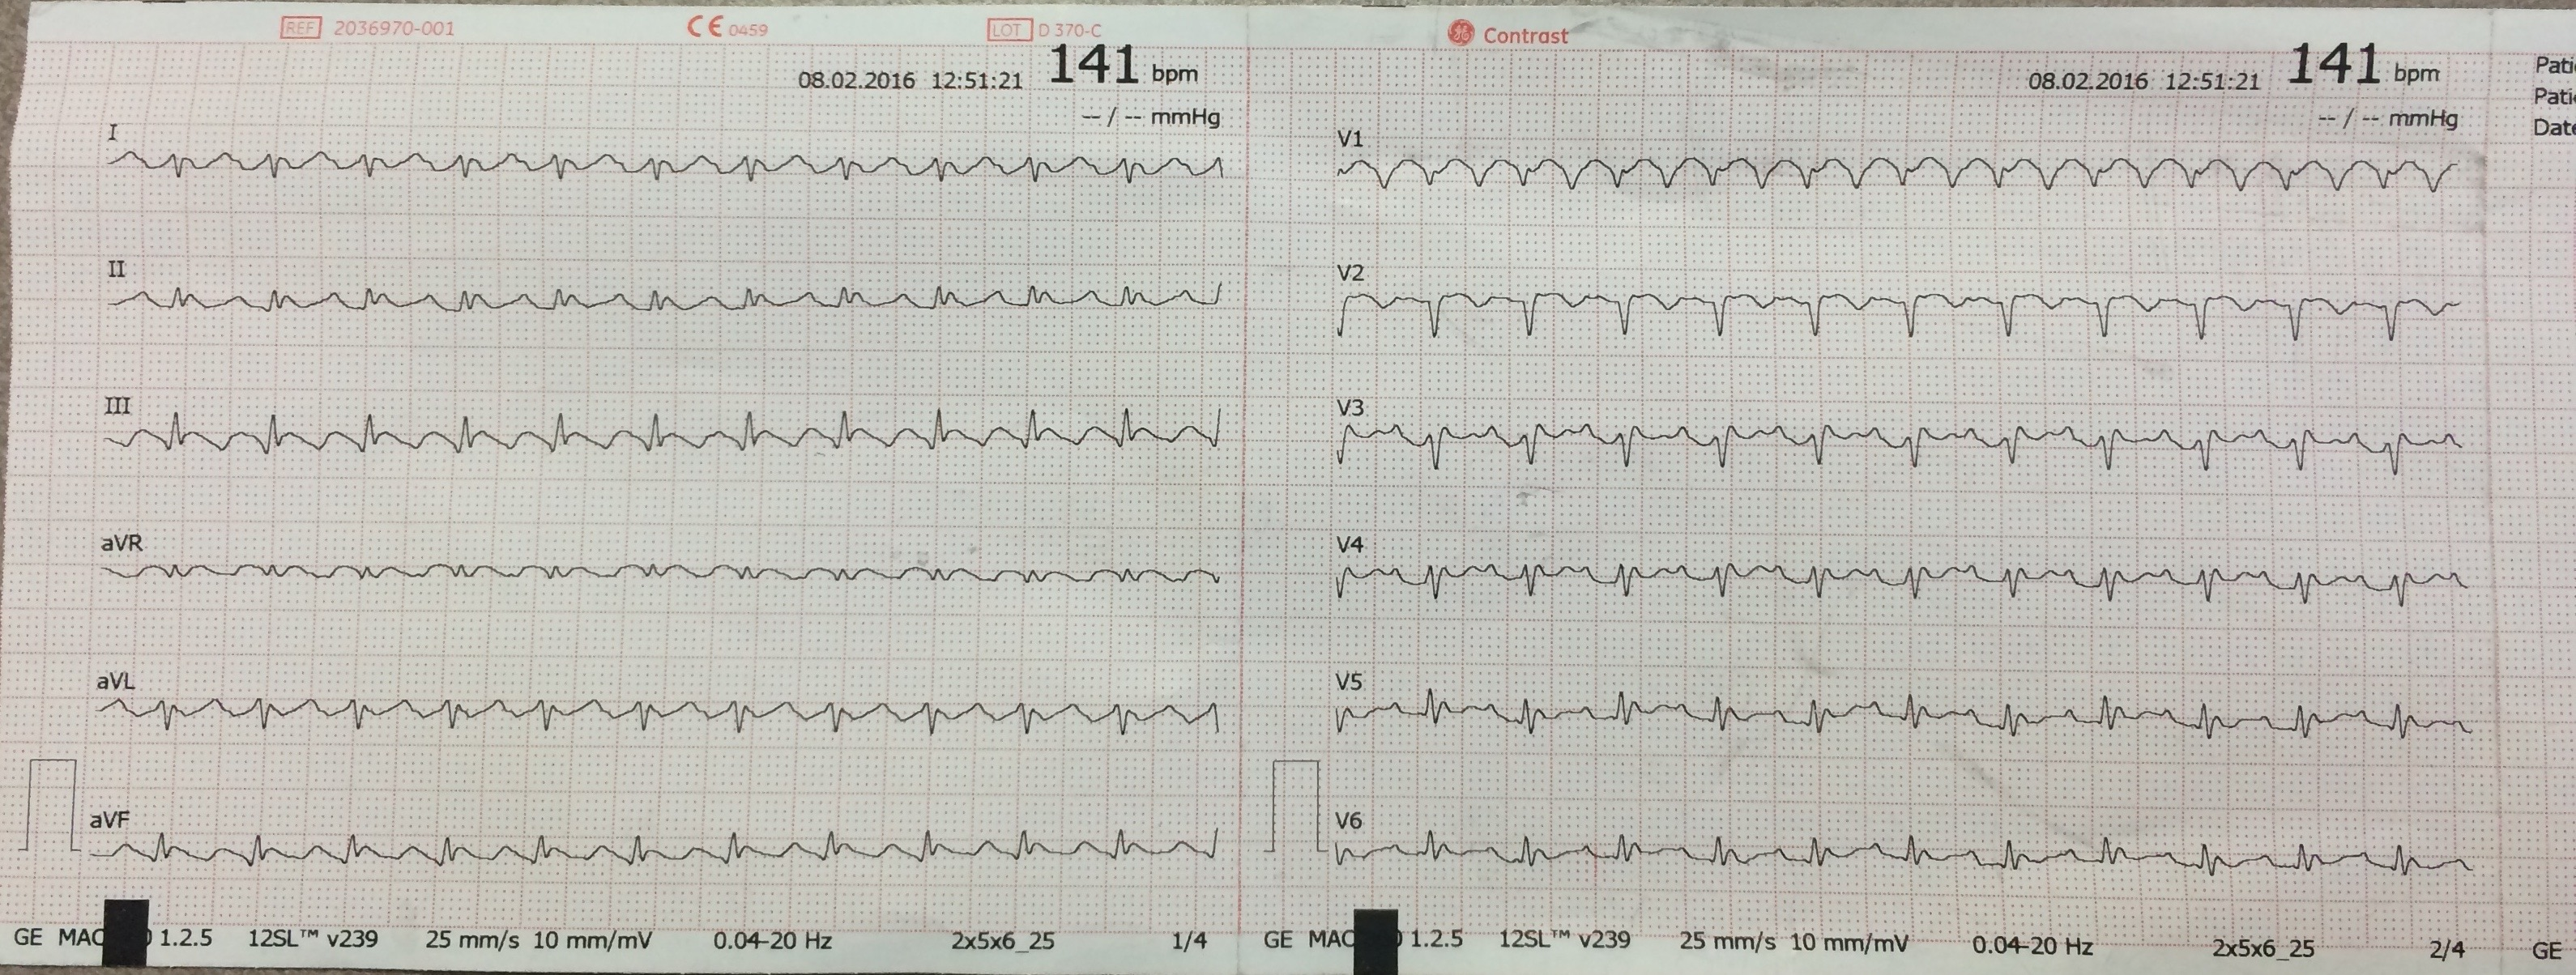 Ecg For Atrial Flutter K Ip